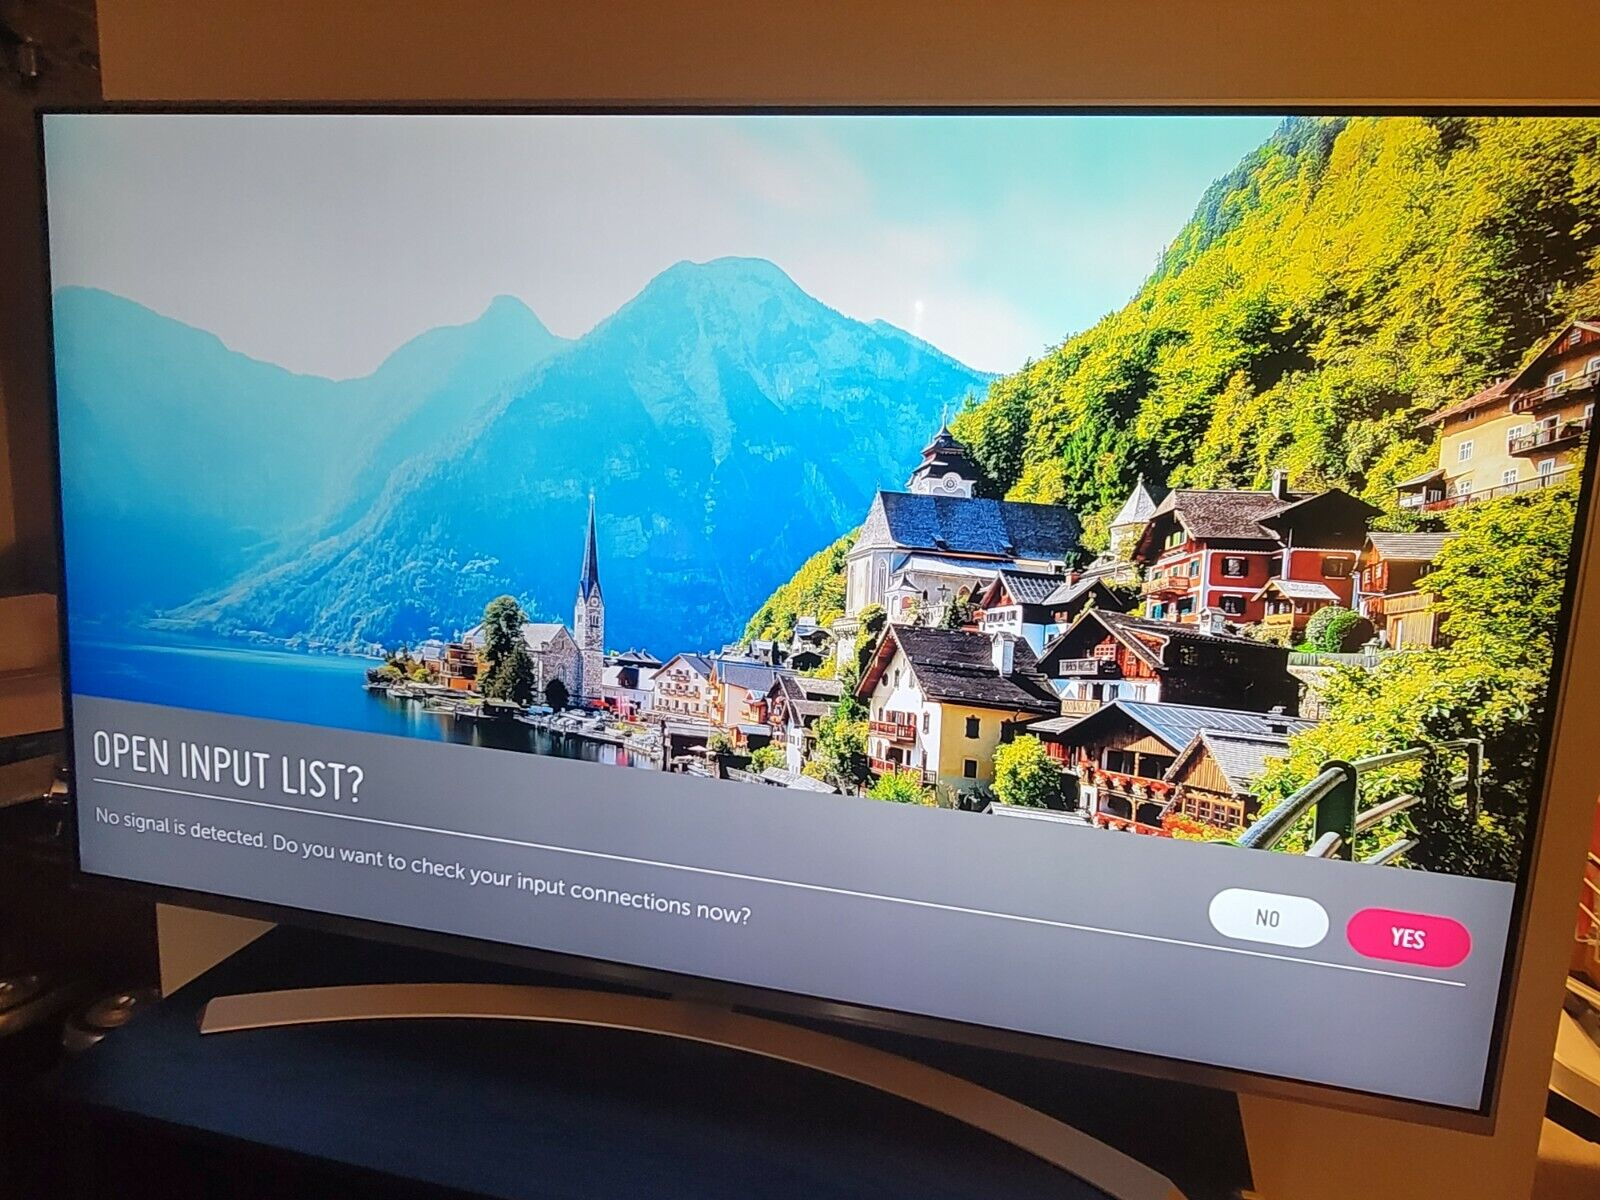 LG 65UH8500 65 Smart LED 4K Ultra HD 3D TV. Available Now for 1500.00